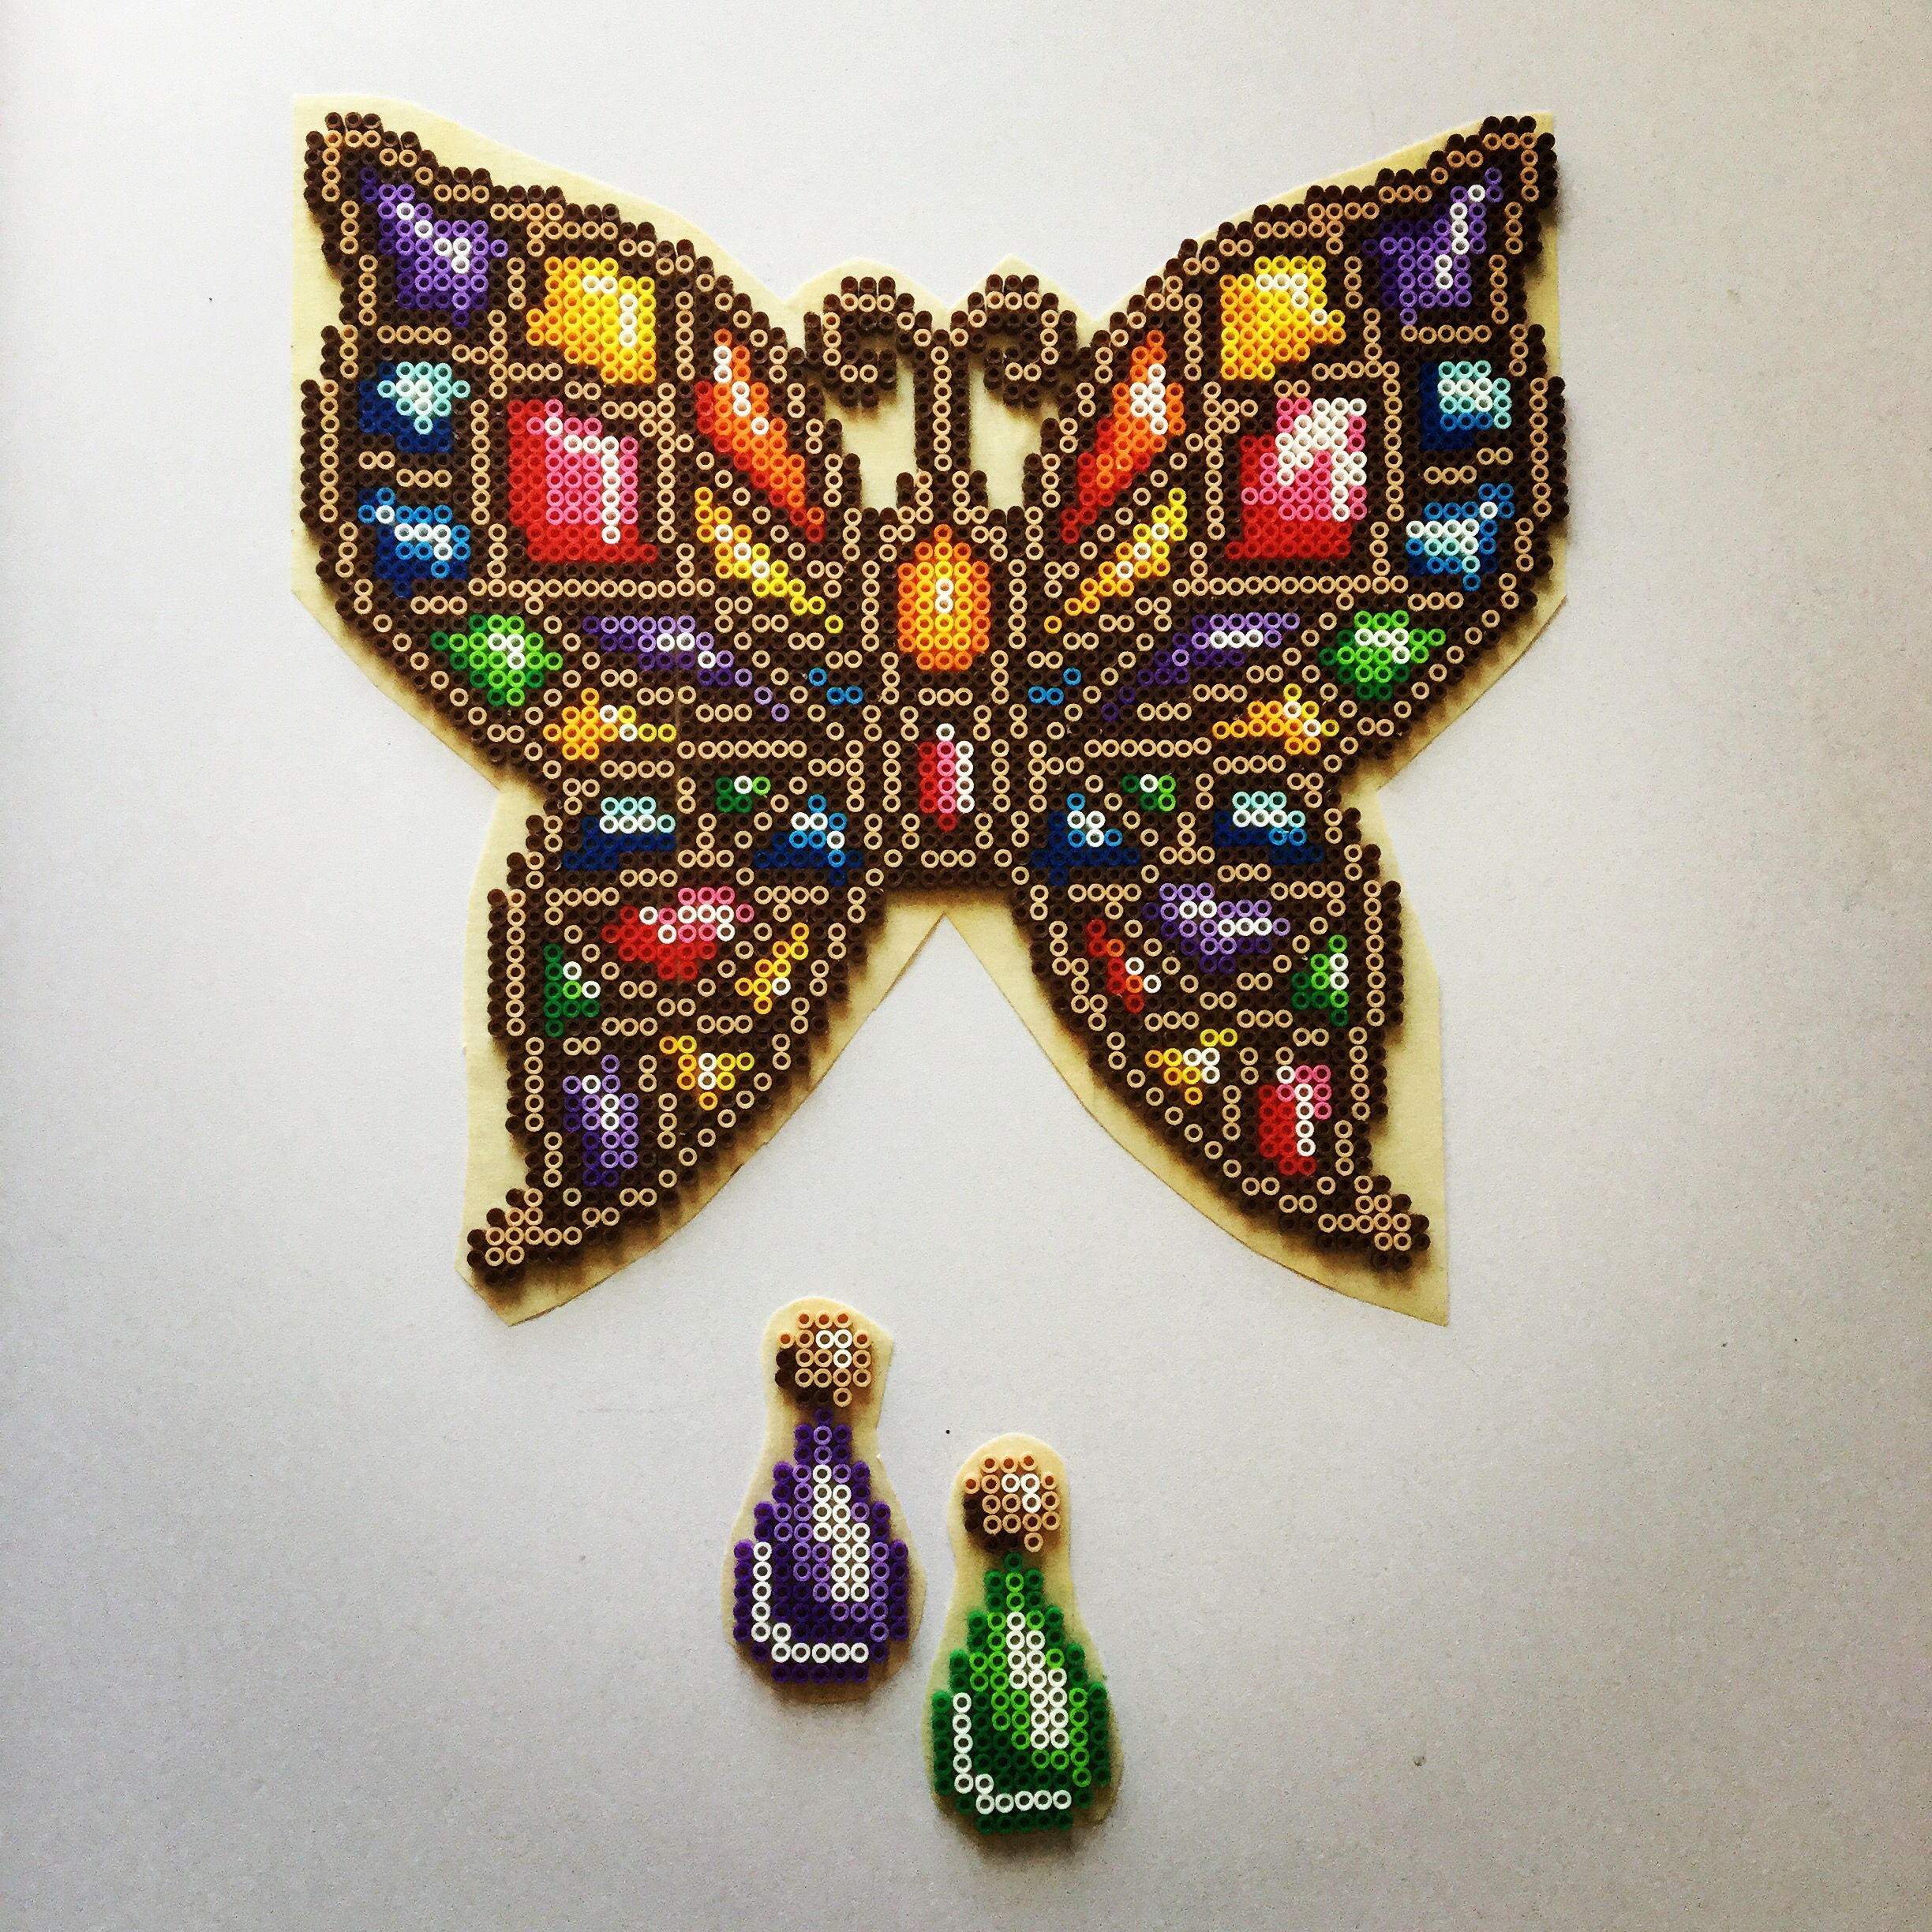 finished bejeweled butterfly just needs fusing gonna